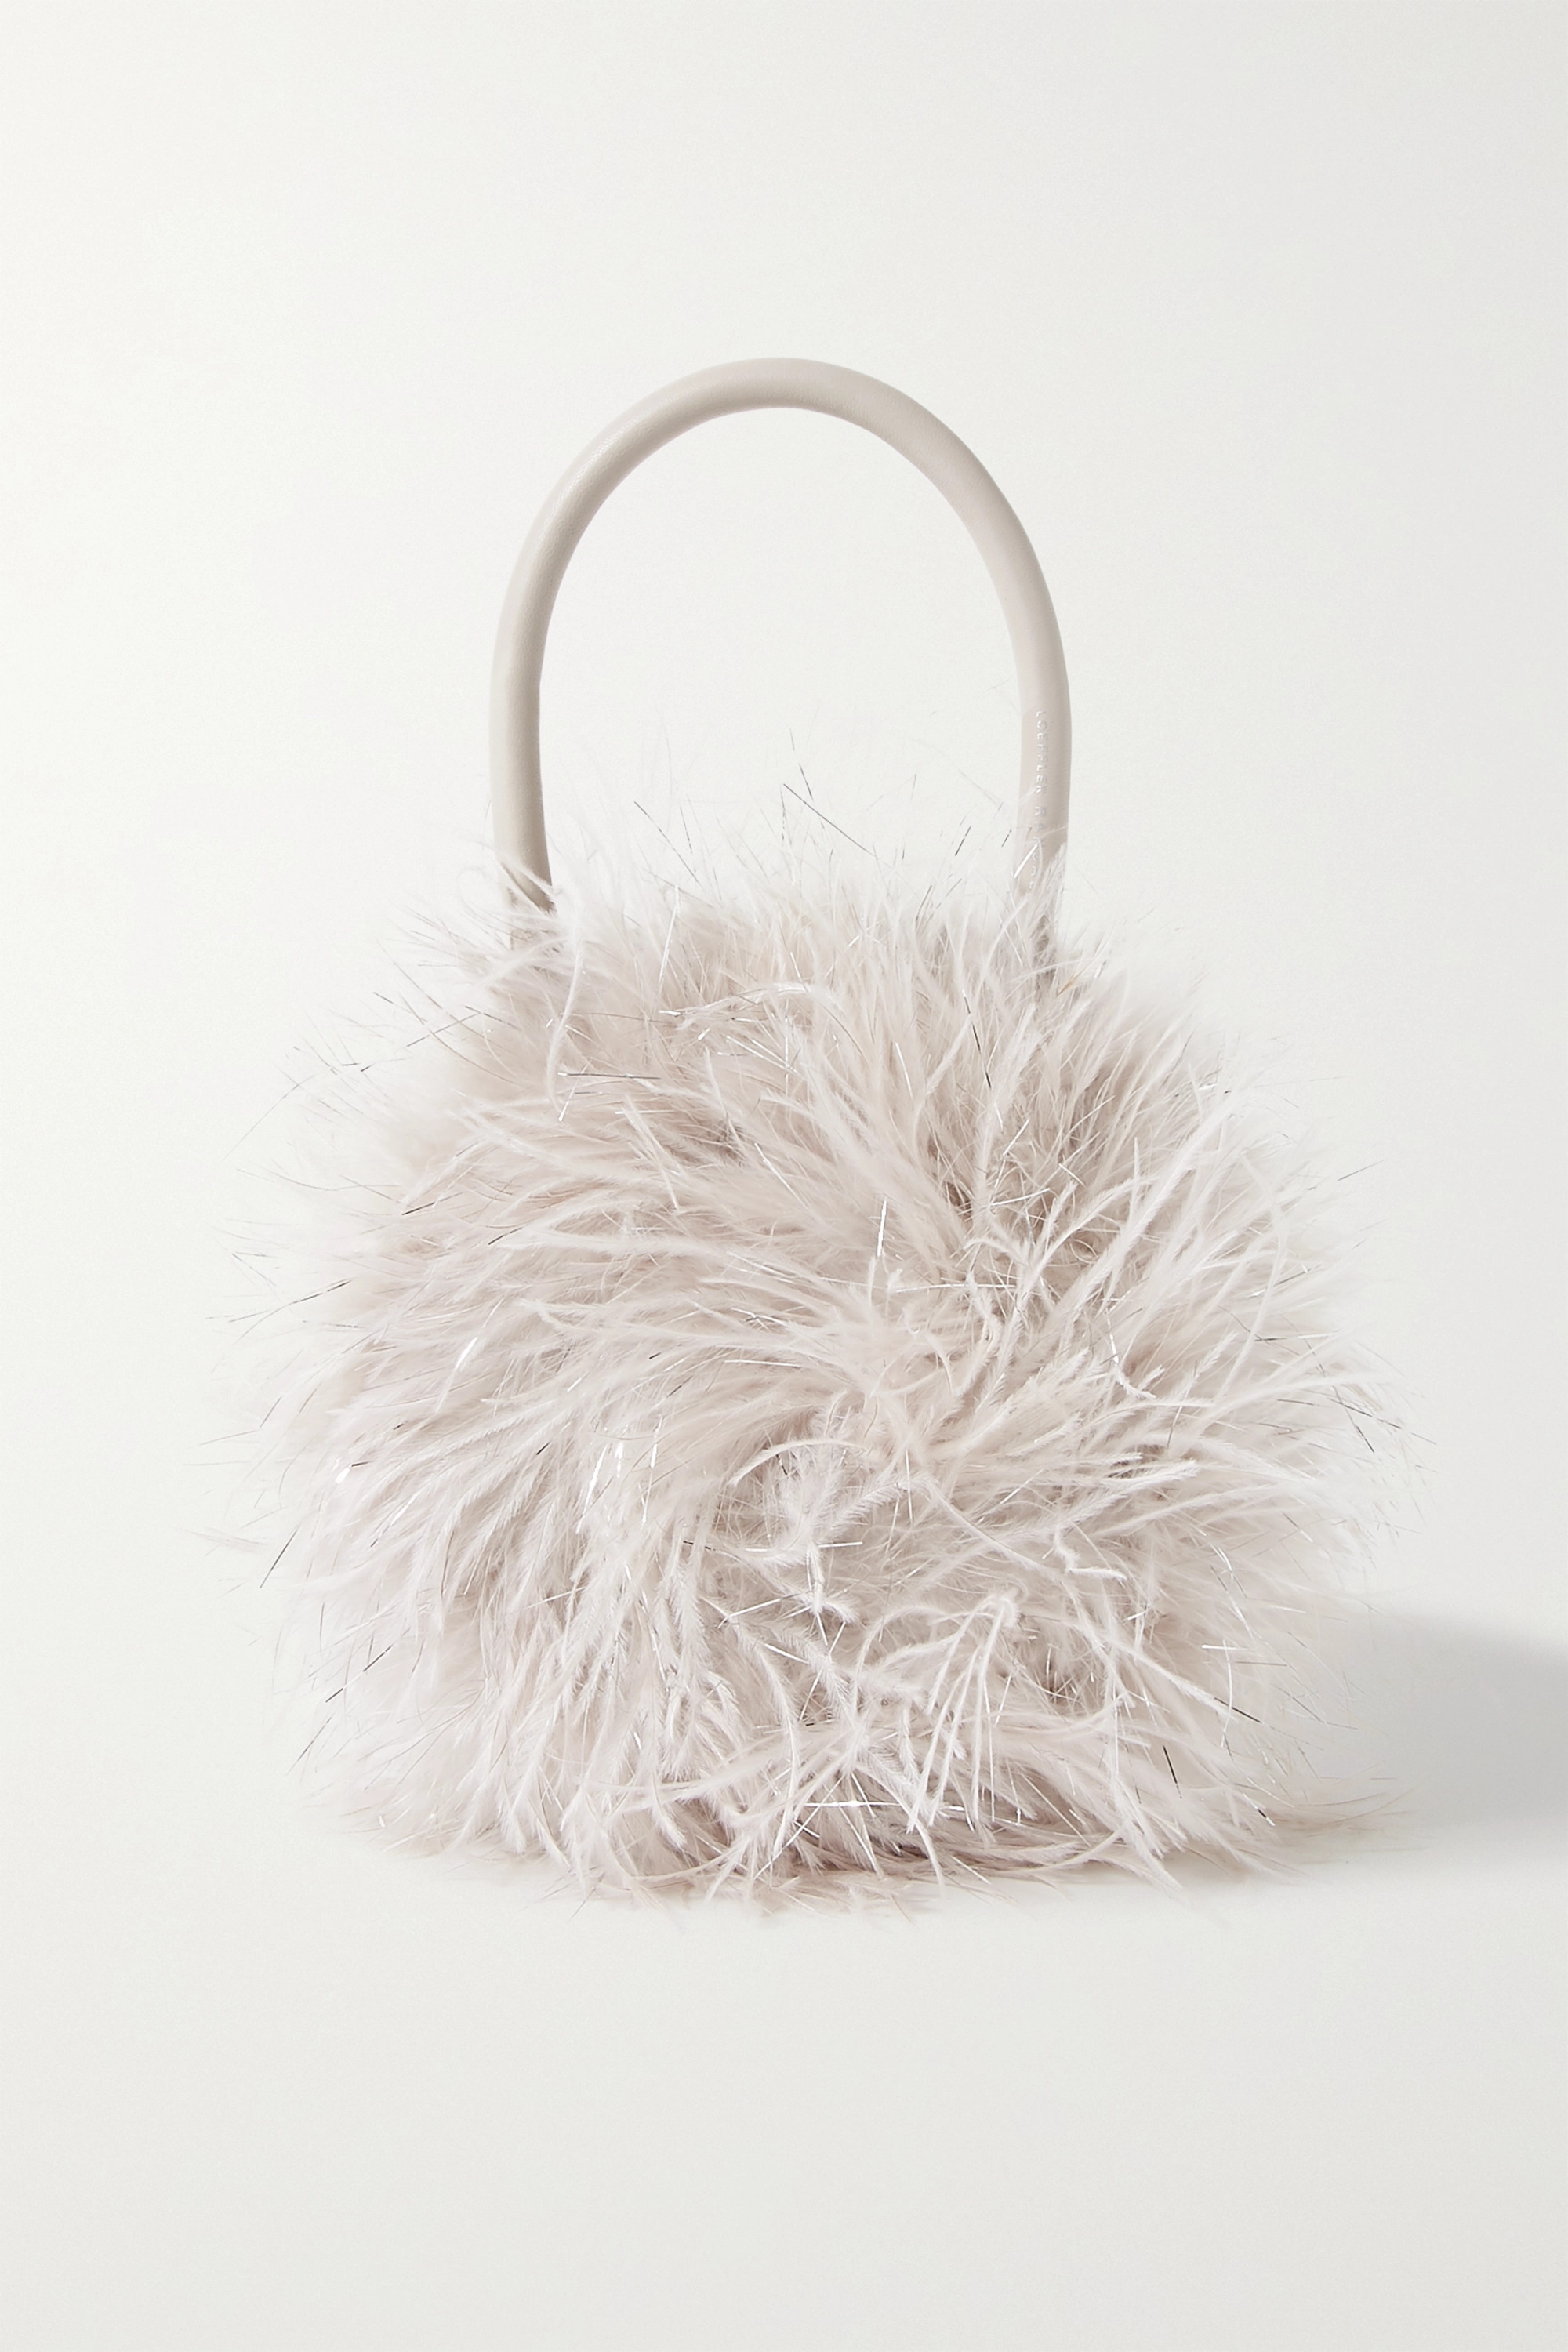 Loeffler Randall Zadie feather-embellished leather tote